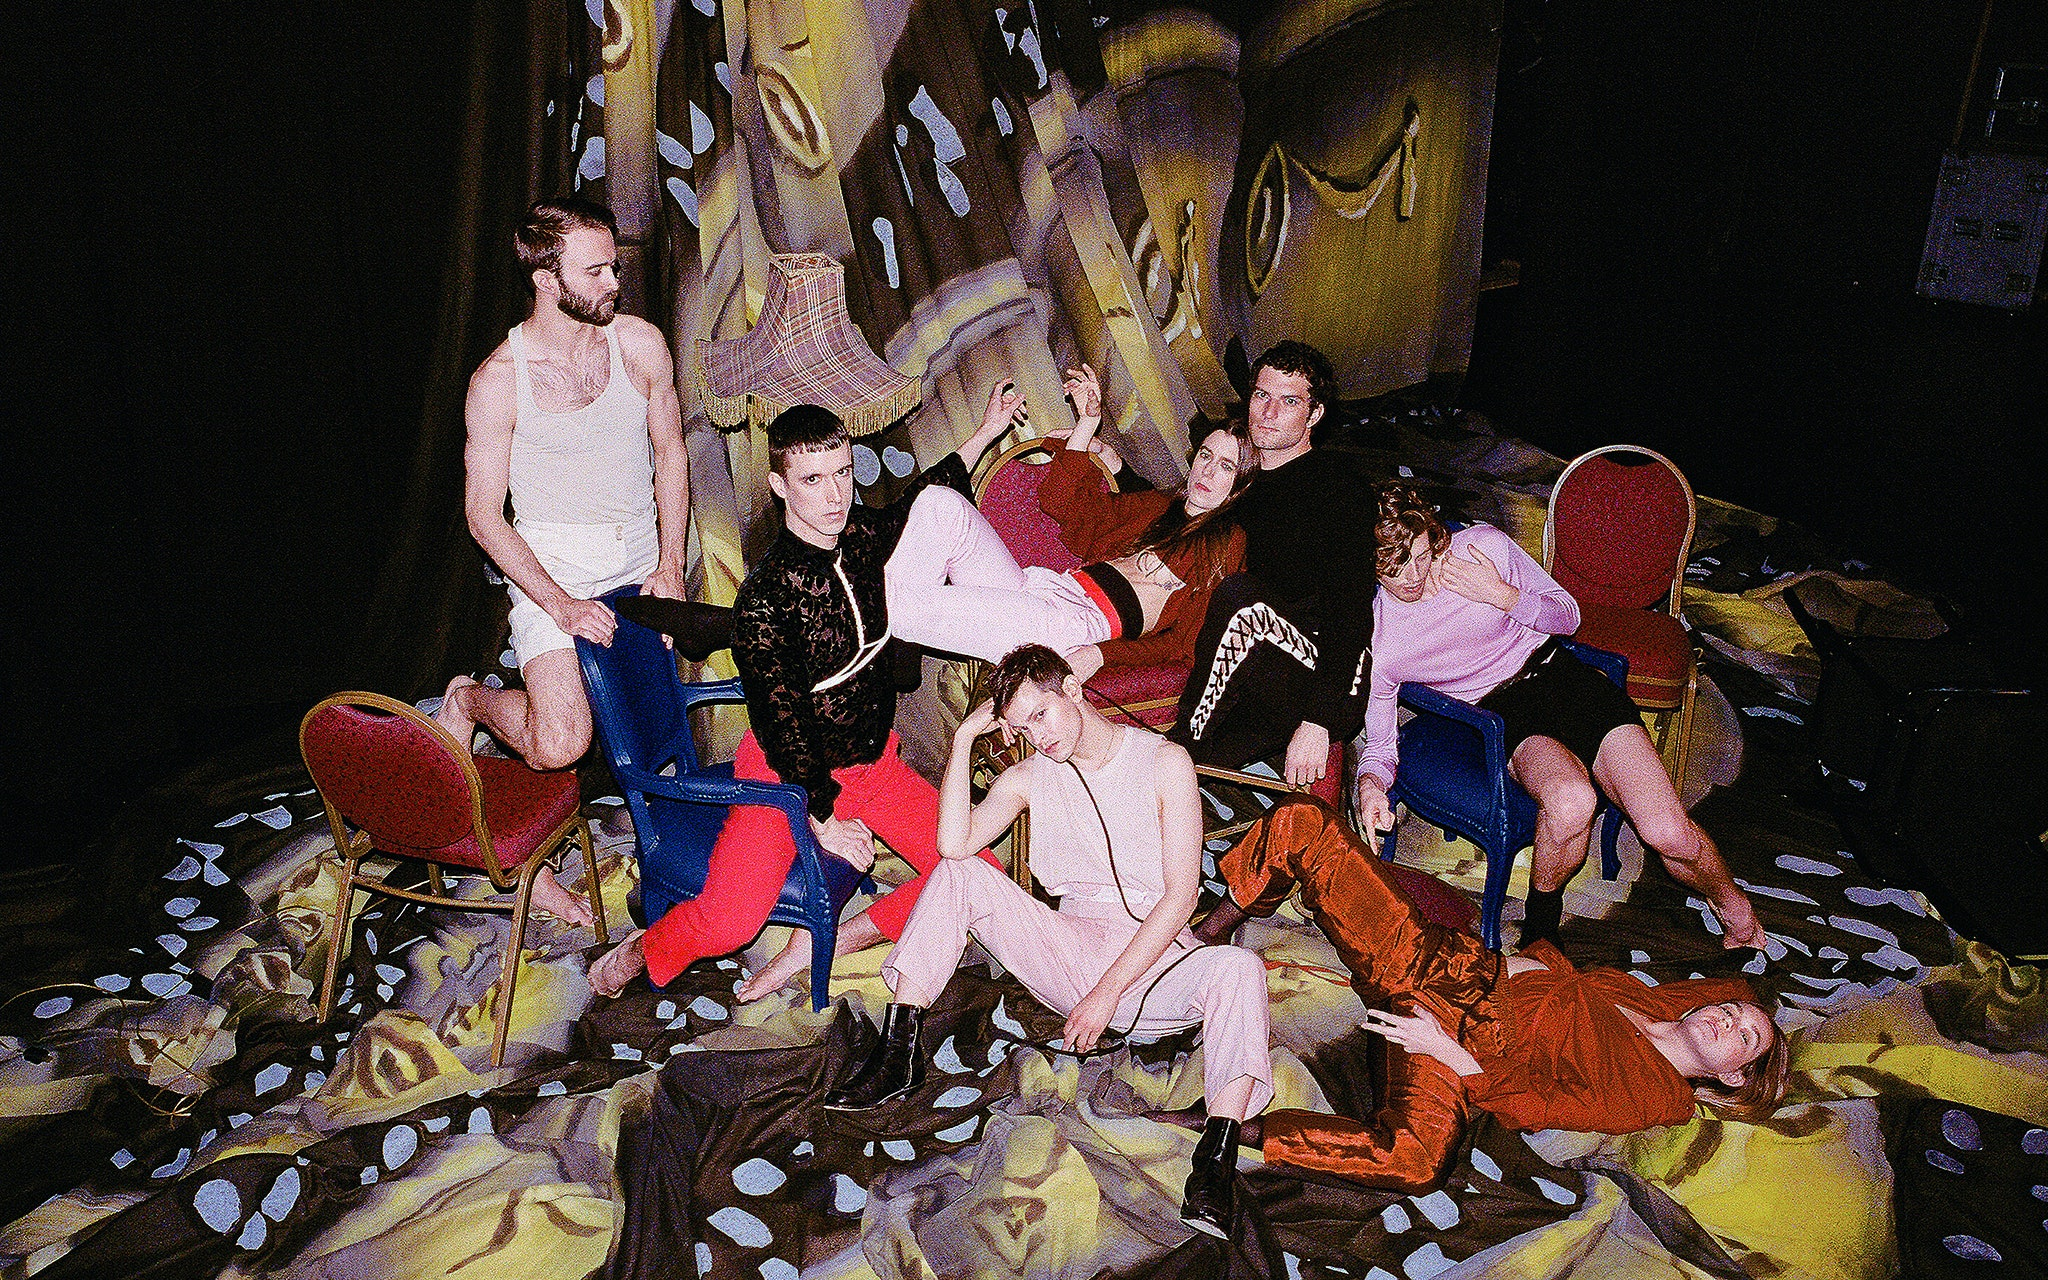 Perfume Genius x Kate Wallich and the YC posing on a multicolored skrim and chairs.